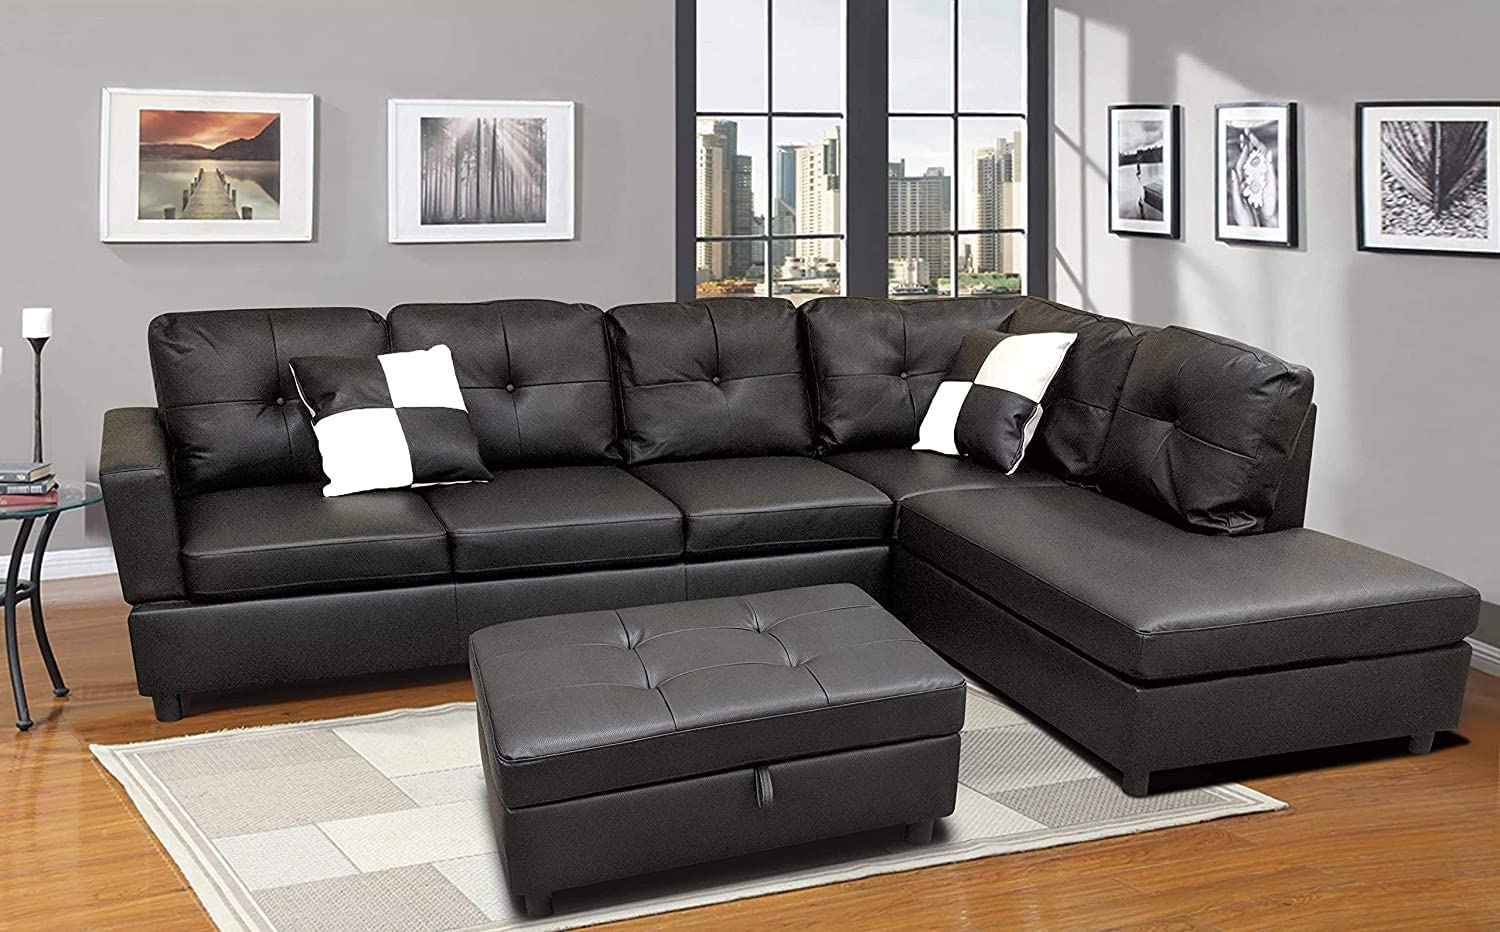 Amazon Com Sofa Sectional Sofa L Shape Faux Leather Sectional Sofa Couch Set With Chaise Ottoman 2 Toss Pillow Using For Living Room Furniture Black Kitchen Dining